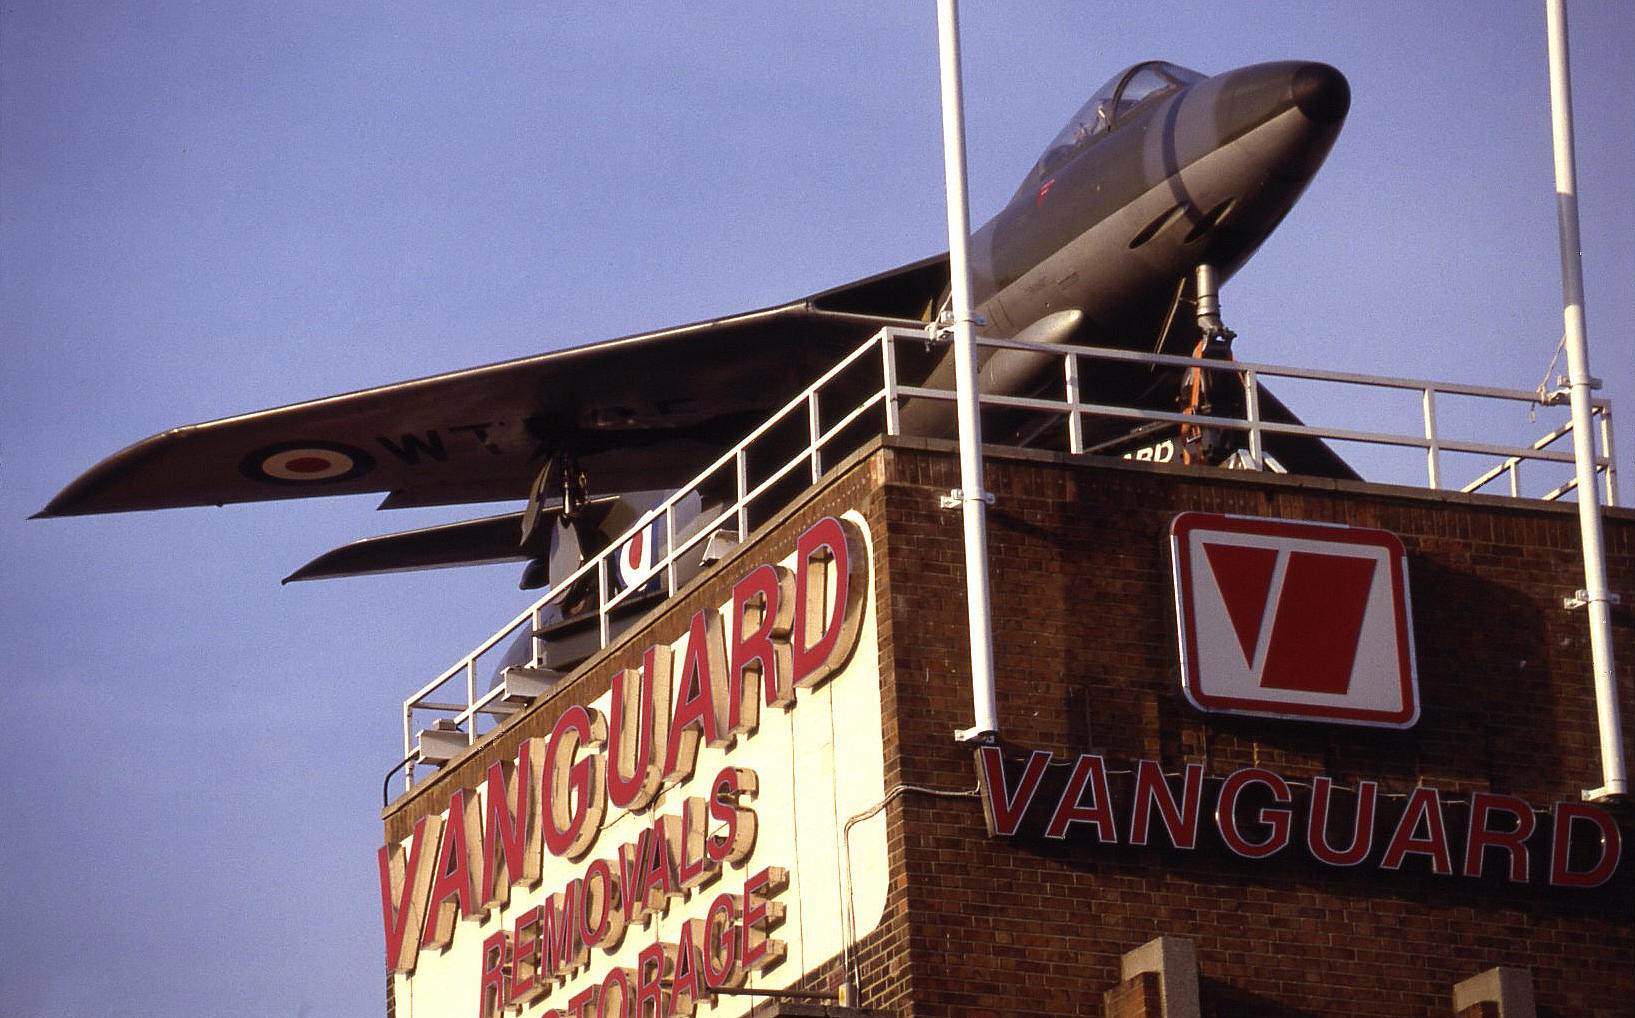 The Hawker Hunter F.1 on the Vanguard tower